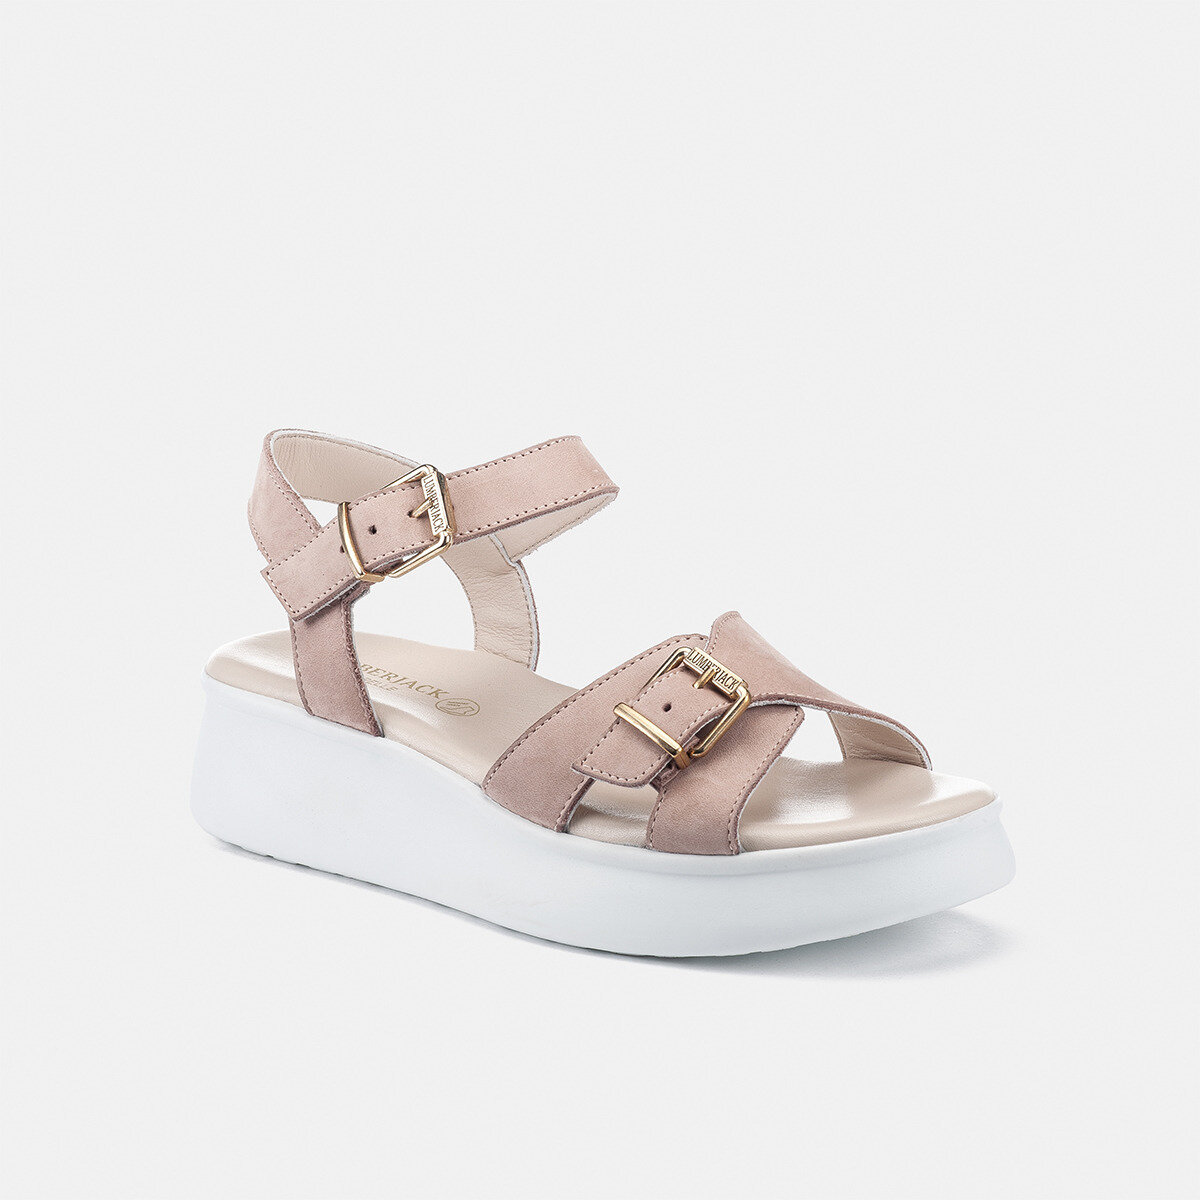 WENDY ROSE Woman Sandals